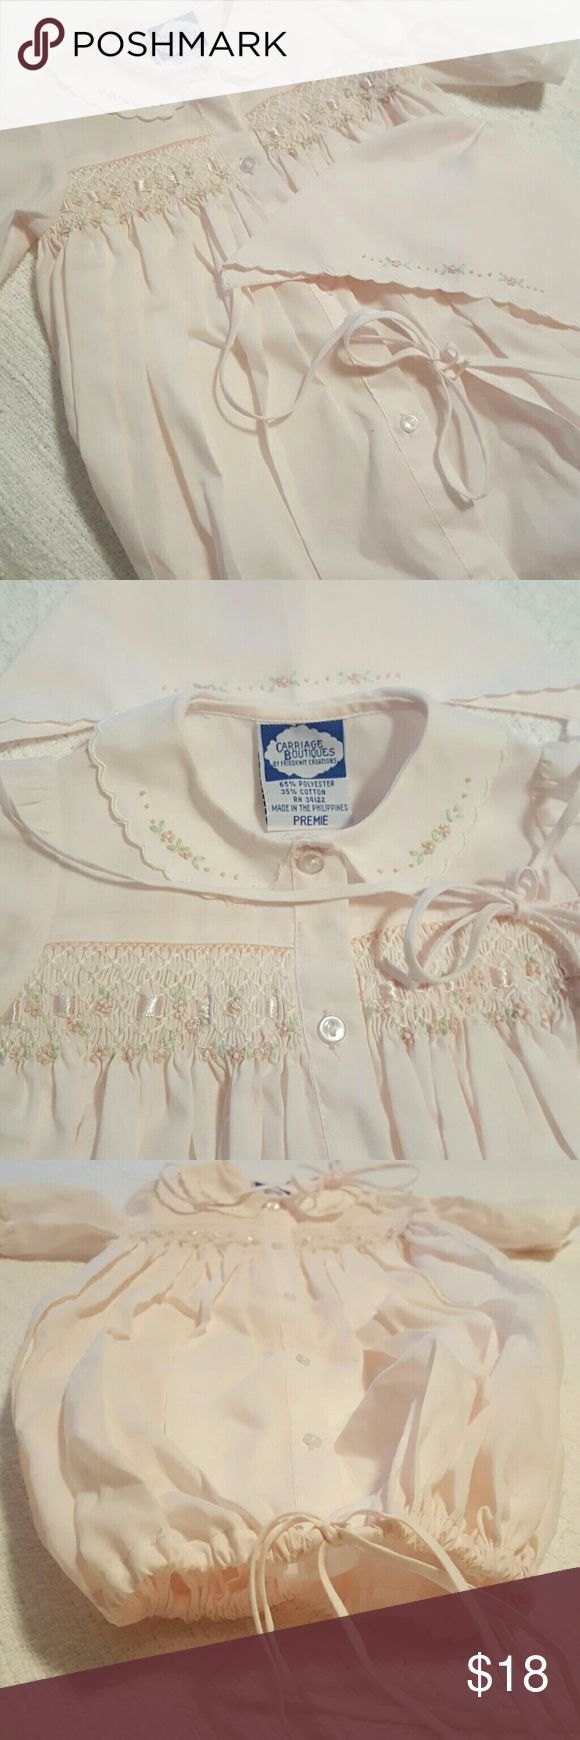 Vintage baby sack dress with cap EUC pale pink with embroidery, vintage sack dress with cap, size says preemie but runs big. carriage boutiques Matching Sets